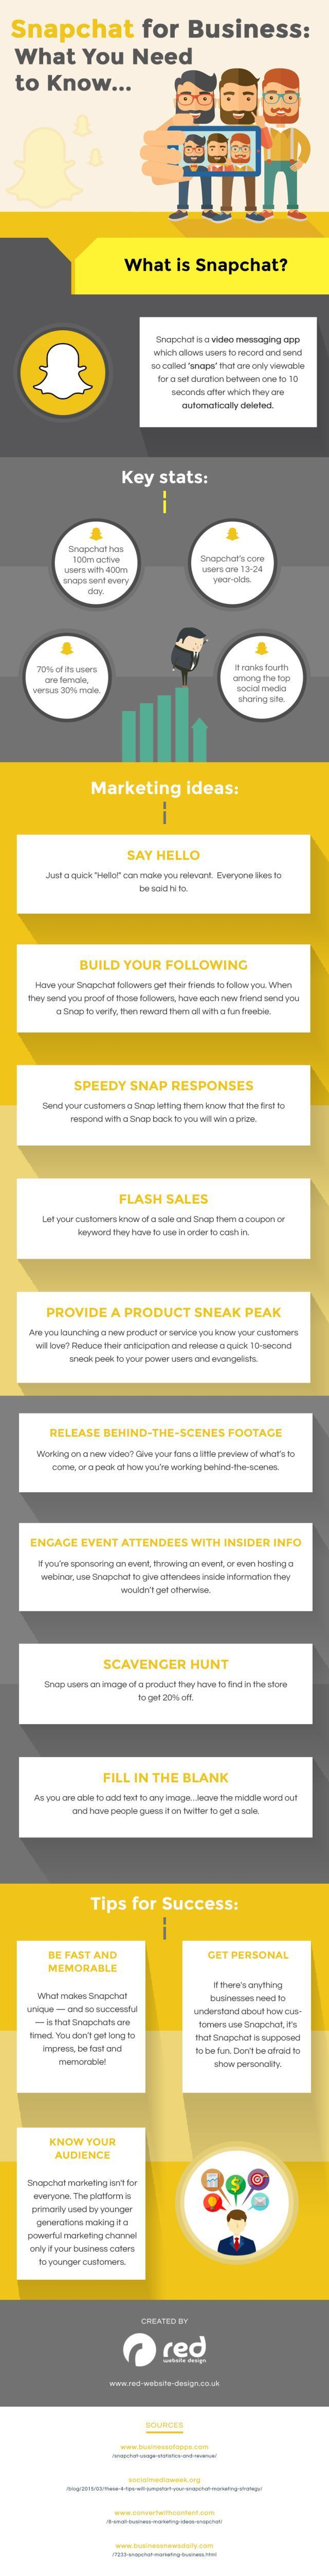 SNapchat Marketing| Everything you need to know about Snapchat and how to use it for business #Infographic #SnapchatMarketing #Snapchat